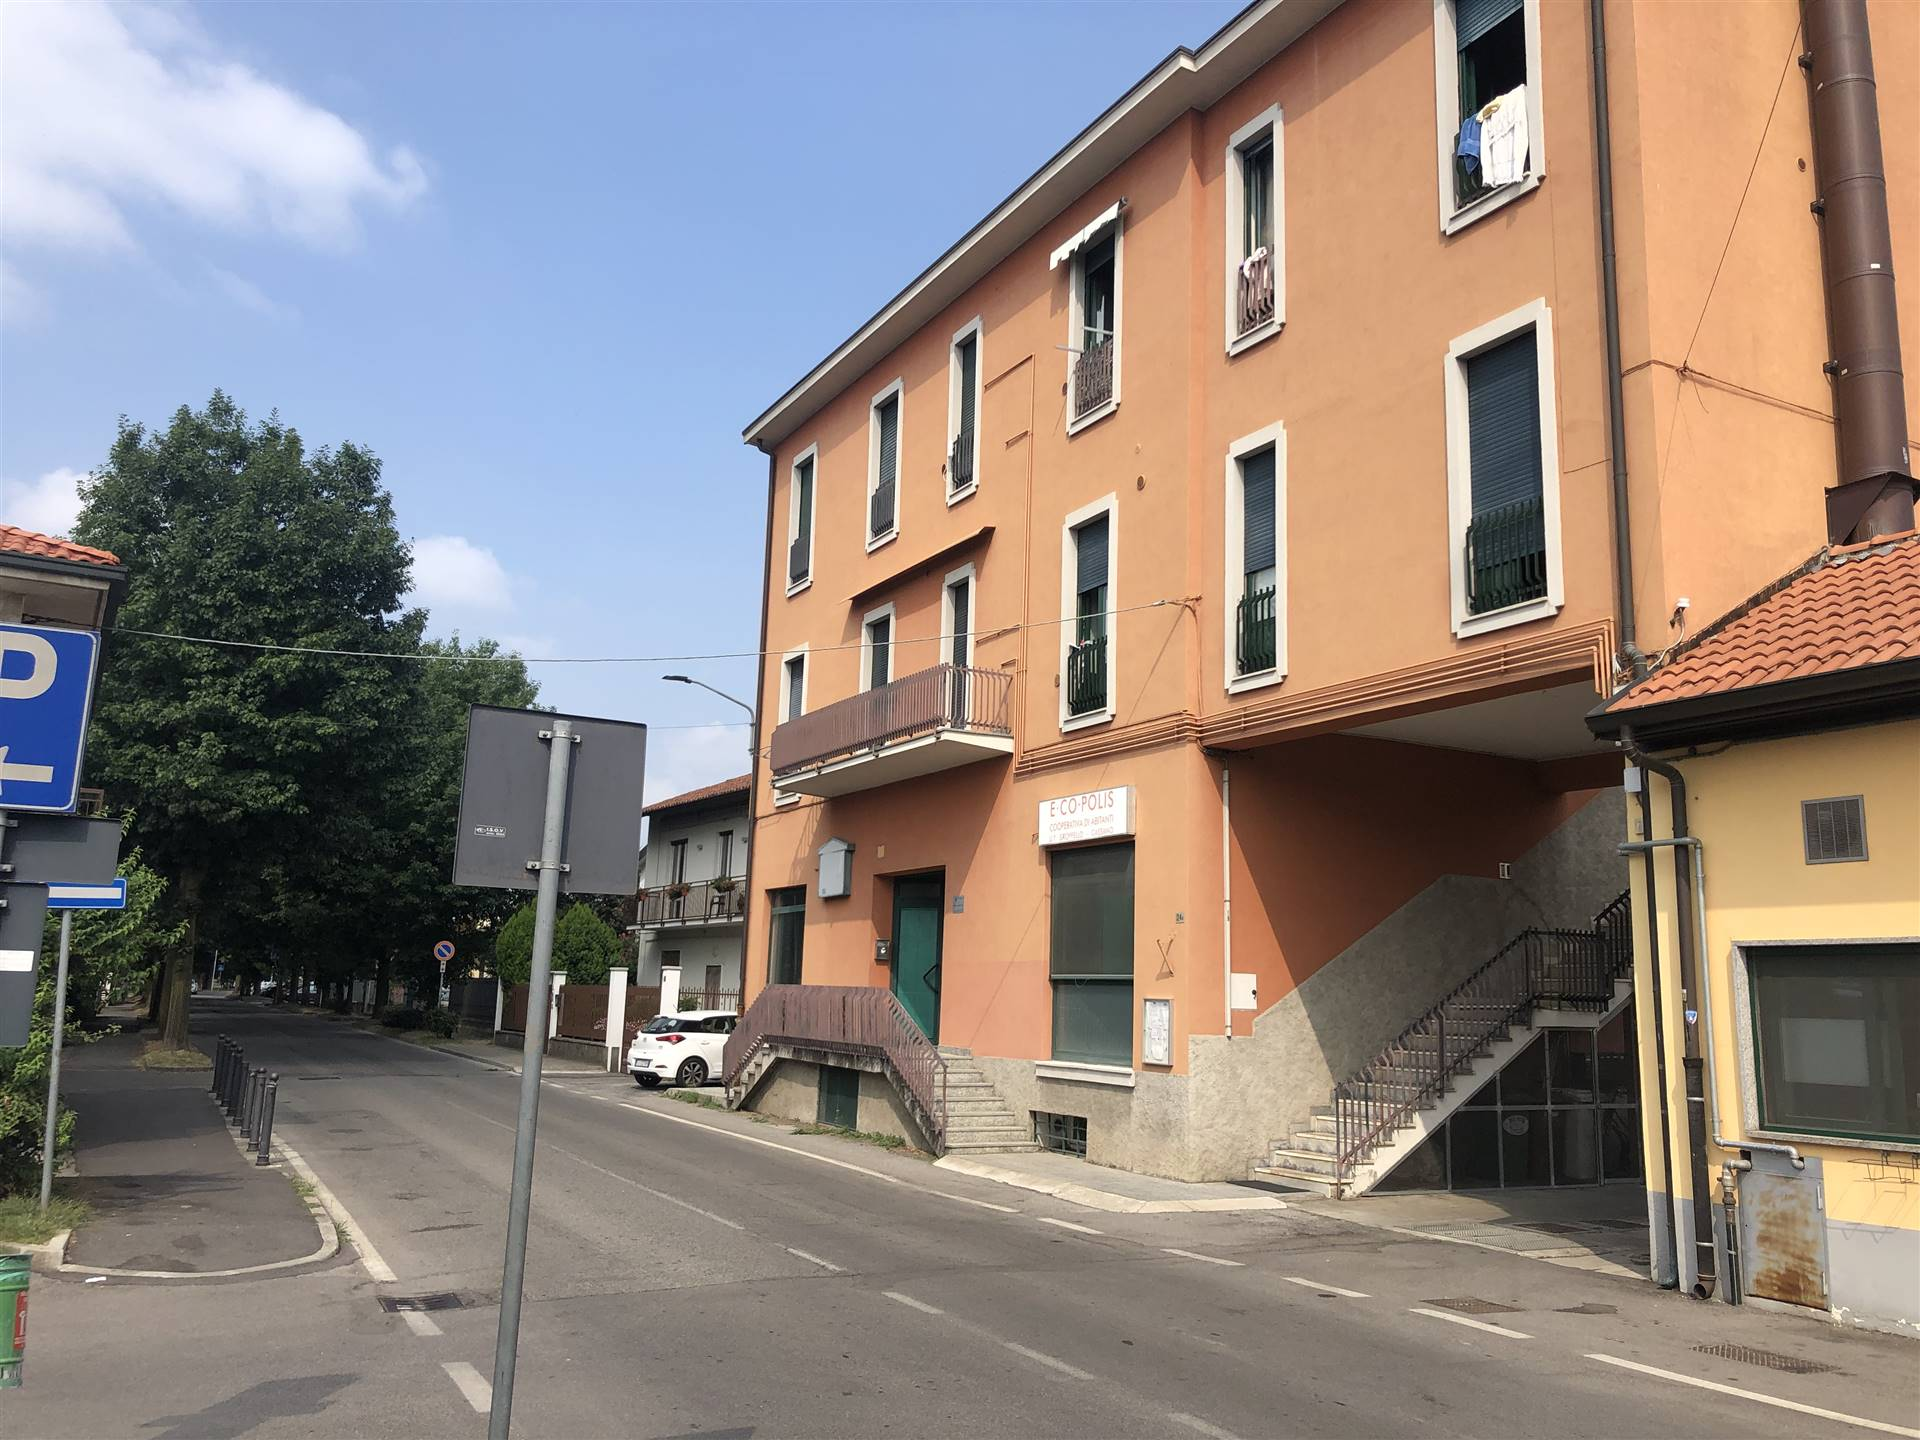 GROPPELLO D'ADDA, CASSANO D'ADDA, Apartment for sale of 65 Sq. mt., Habitable, Heating Individual heating system, Energetic class: G, Epi: 168,3